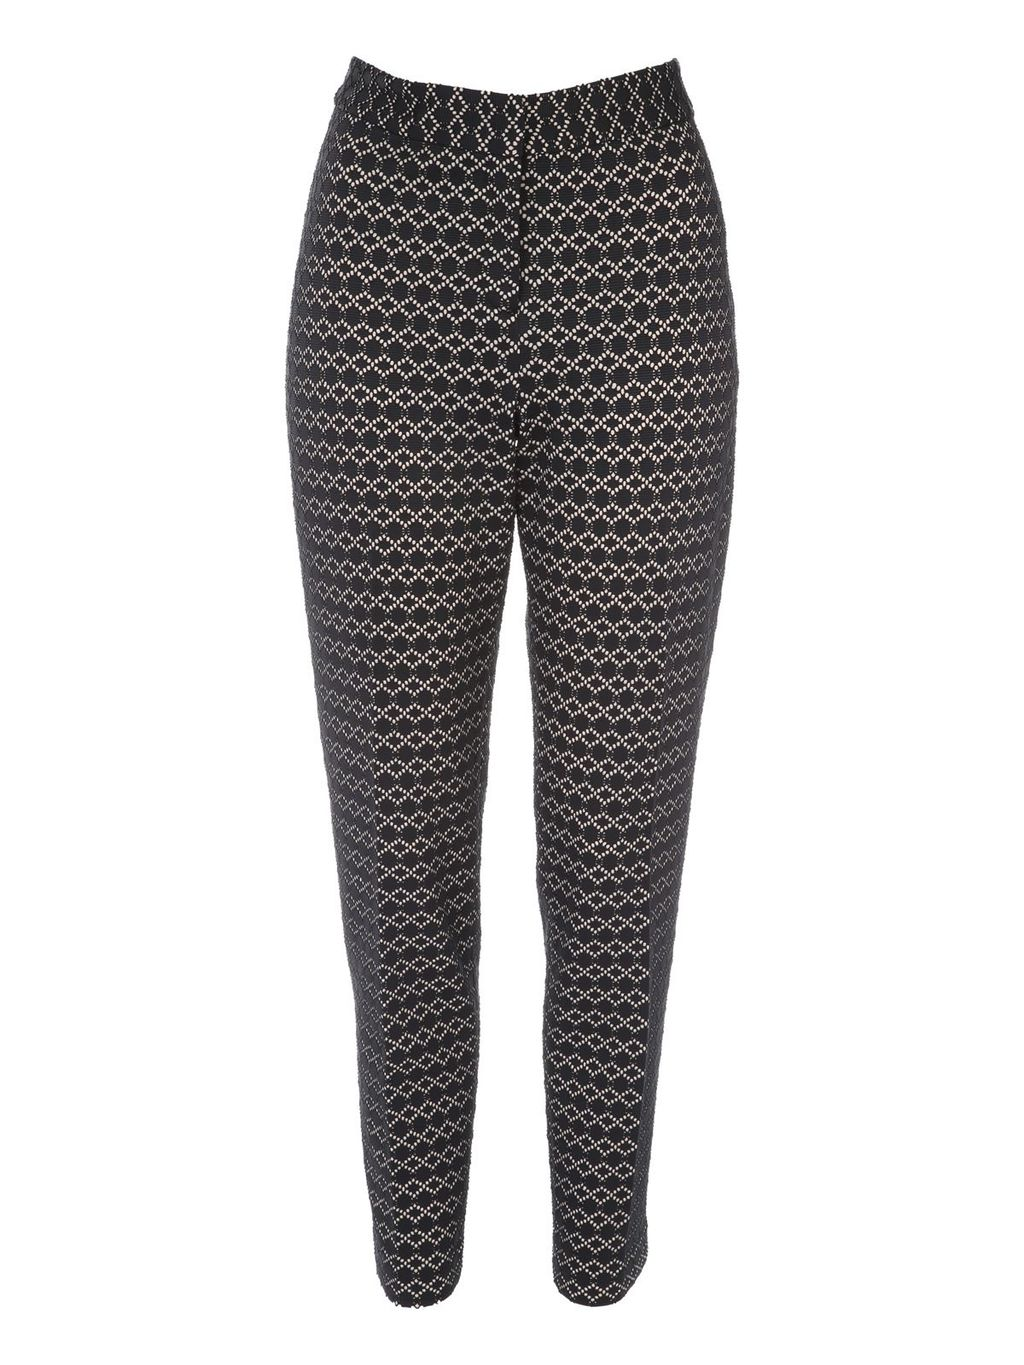 Bonded Lace Cigarette Trouser, Multi Coloured - length: standard; waist: mid/regular rise; secondary colour: ivory/cream; predominant colour: black; occasions: evening, creative work; fibres: polyester/polyamide - 100%; fit: straight leg; pattern type: fabric; pattern: patterned/print; texture group: brocade/jacquard; style: standard; pattern size: standard (bottom); season: s/s 2016; wardrobe: highlight